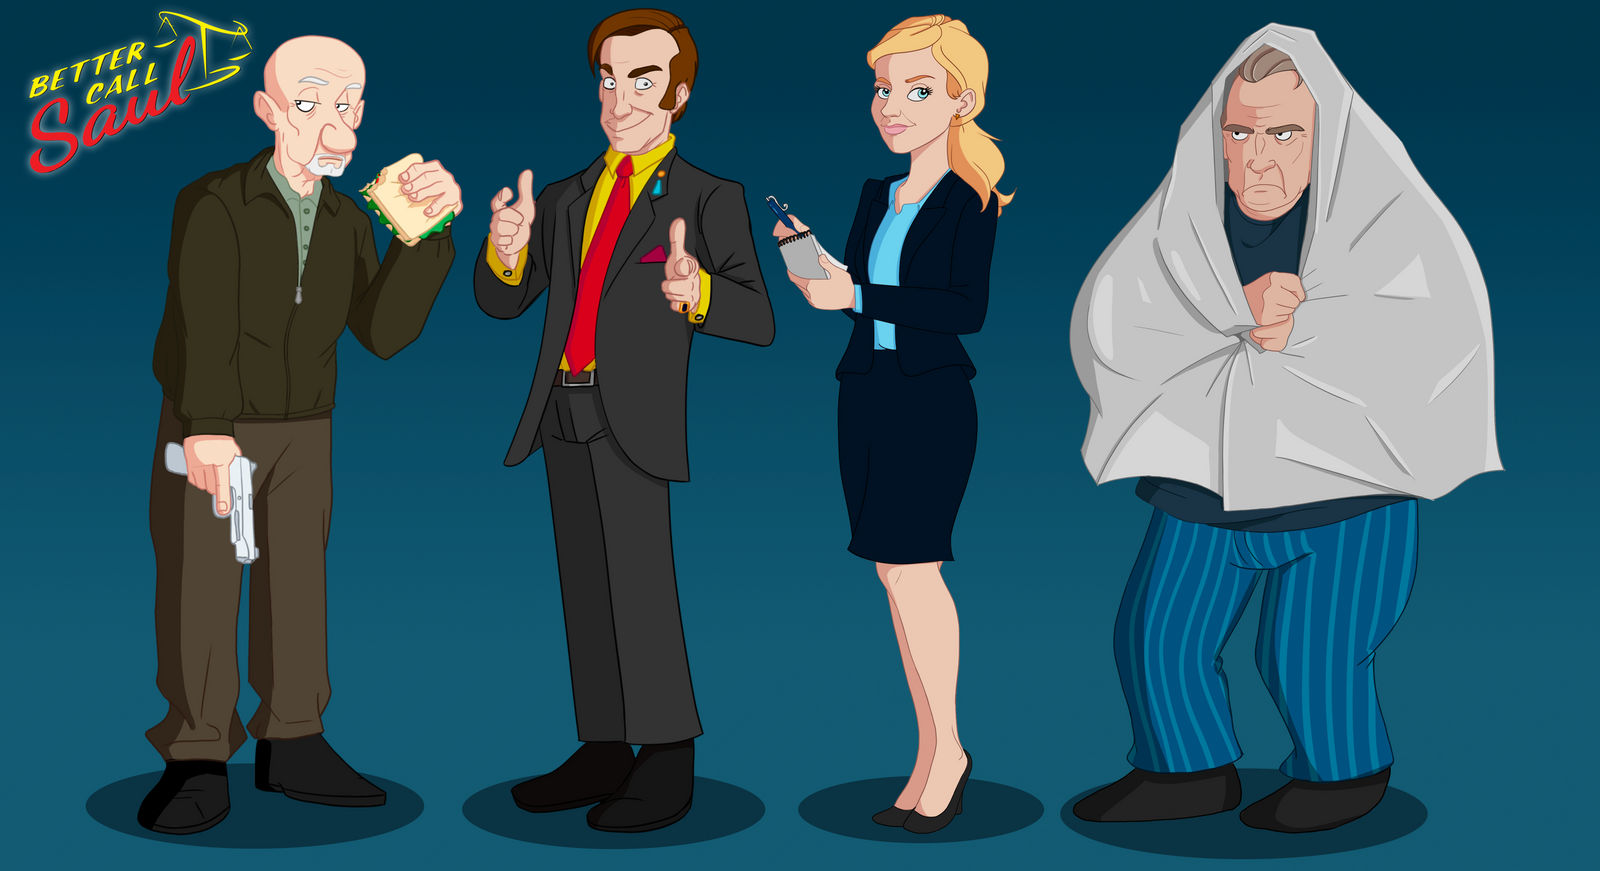 Better Call Saul Cast by Flachzange